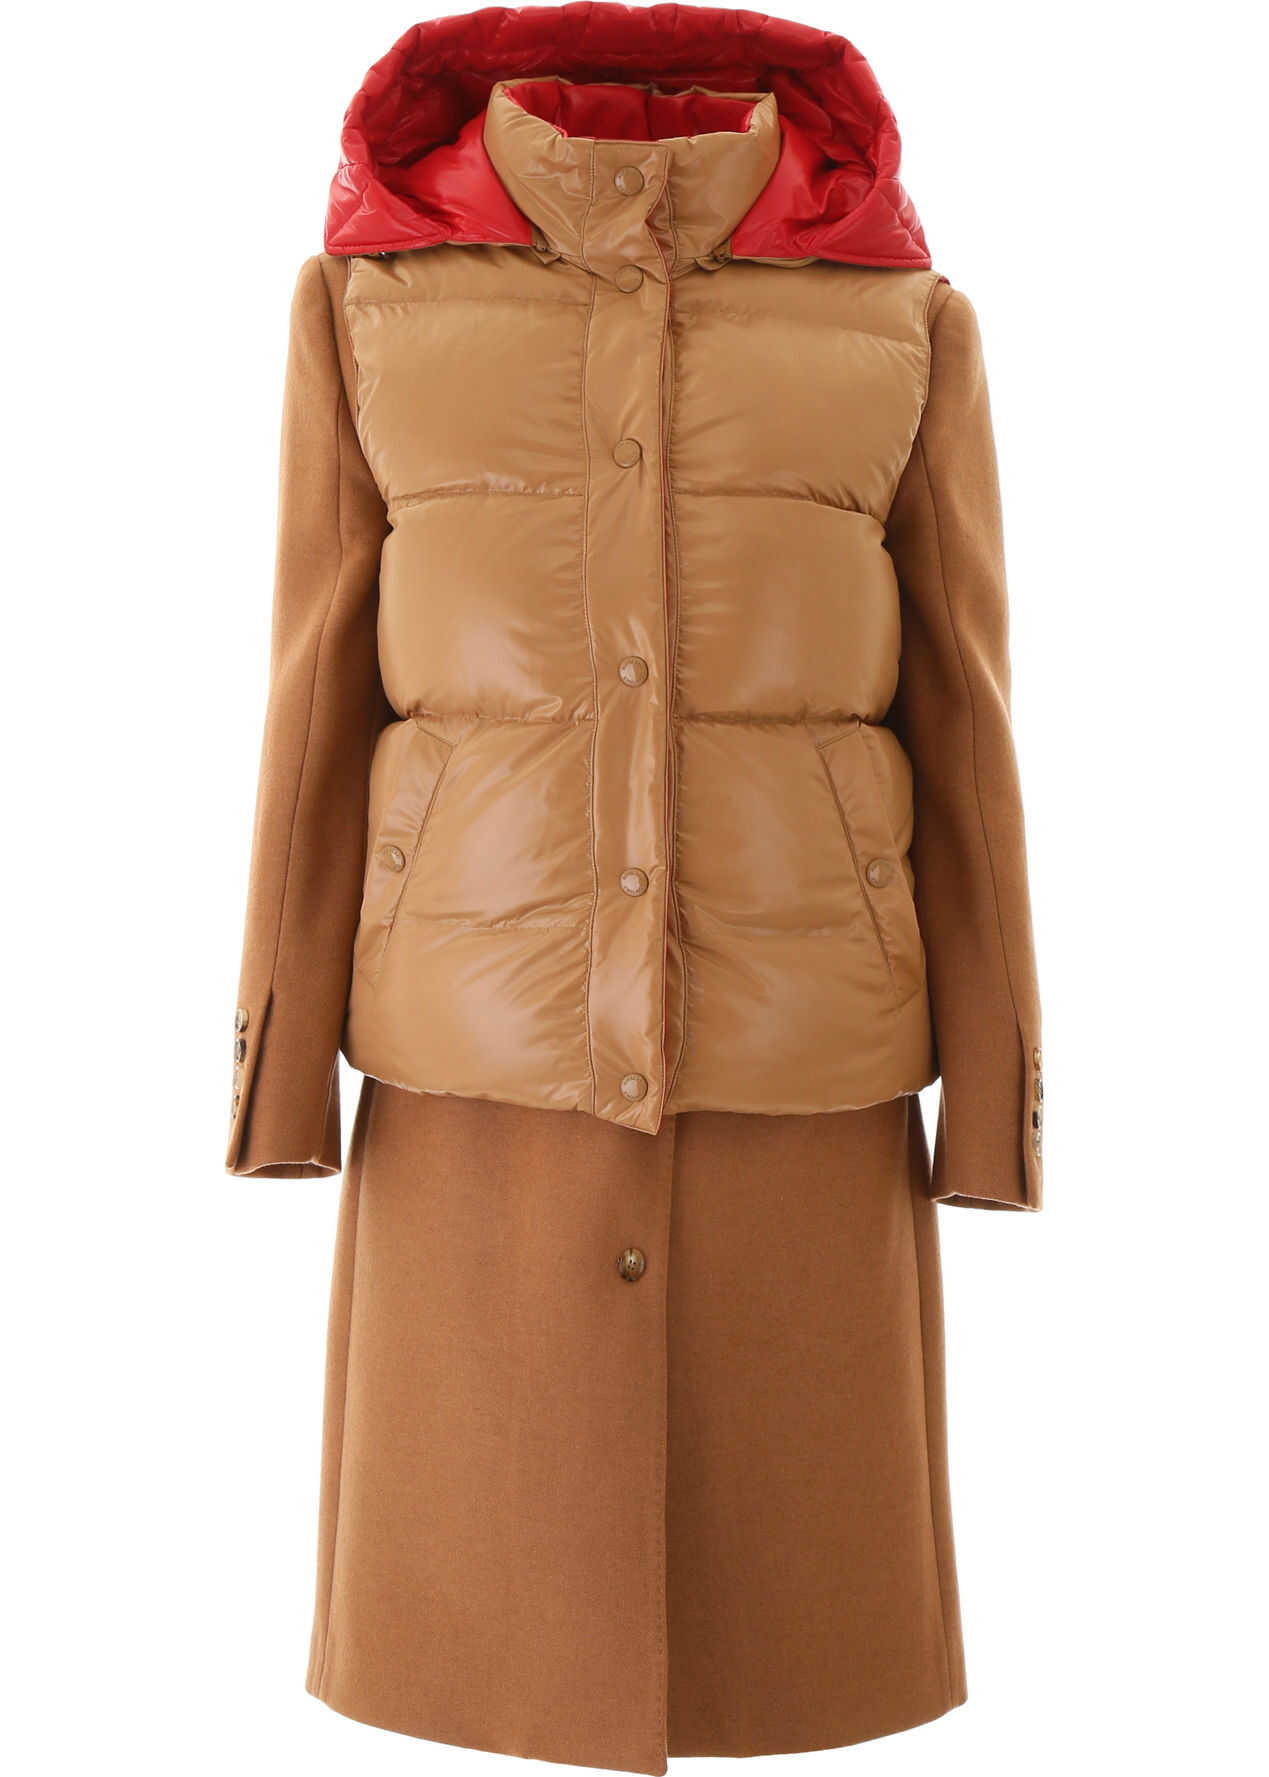 Burberry Coat With Removable Vest BRONZE